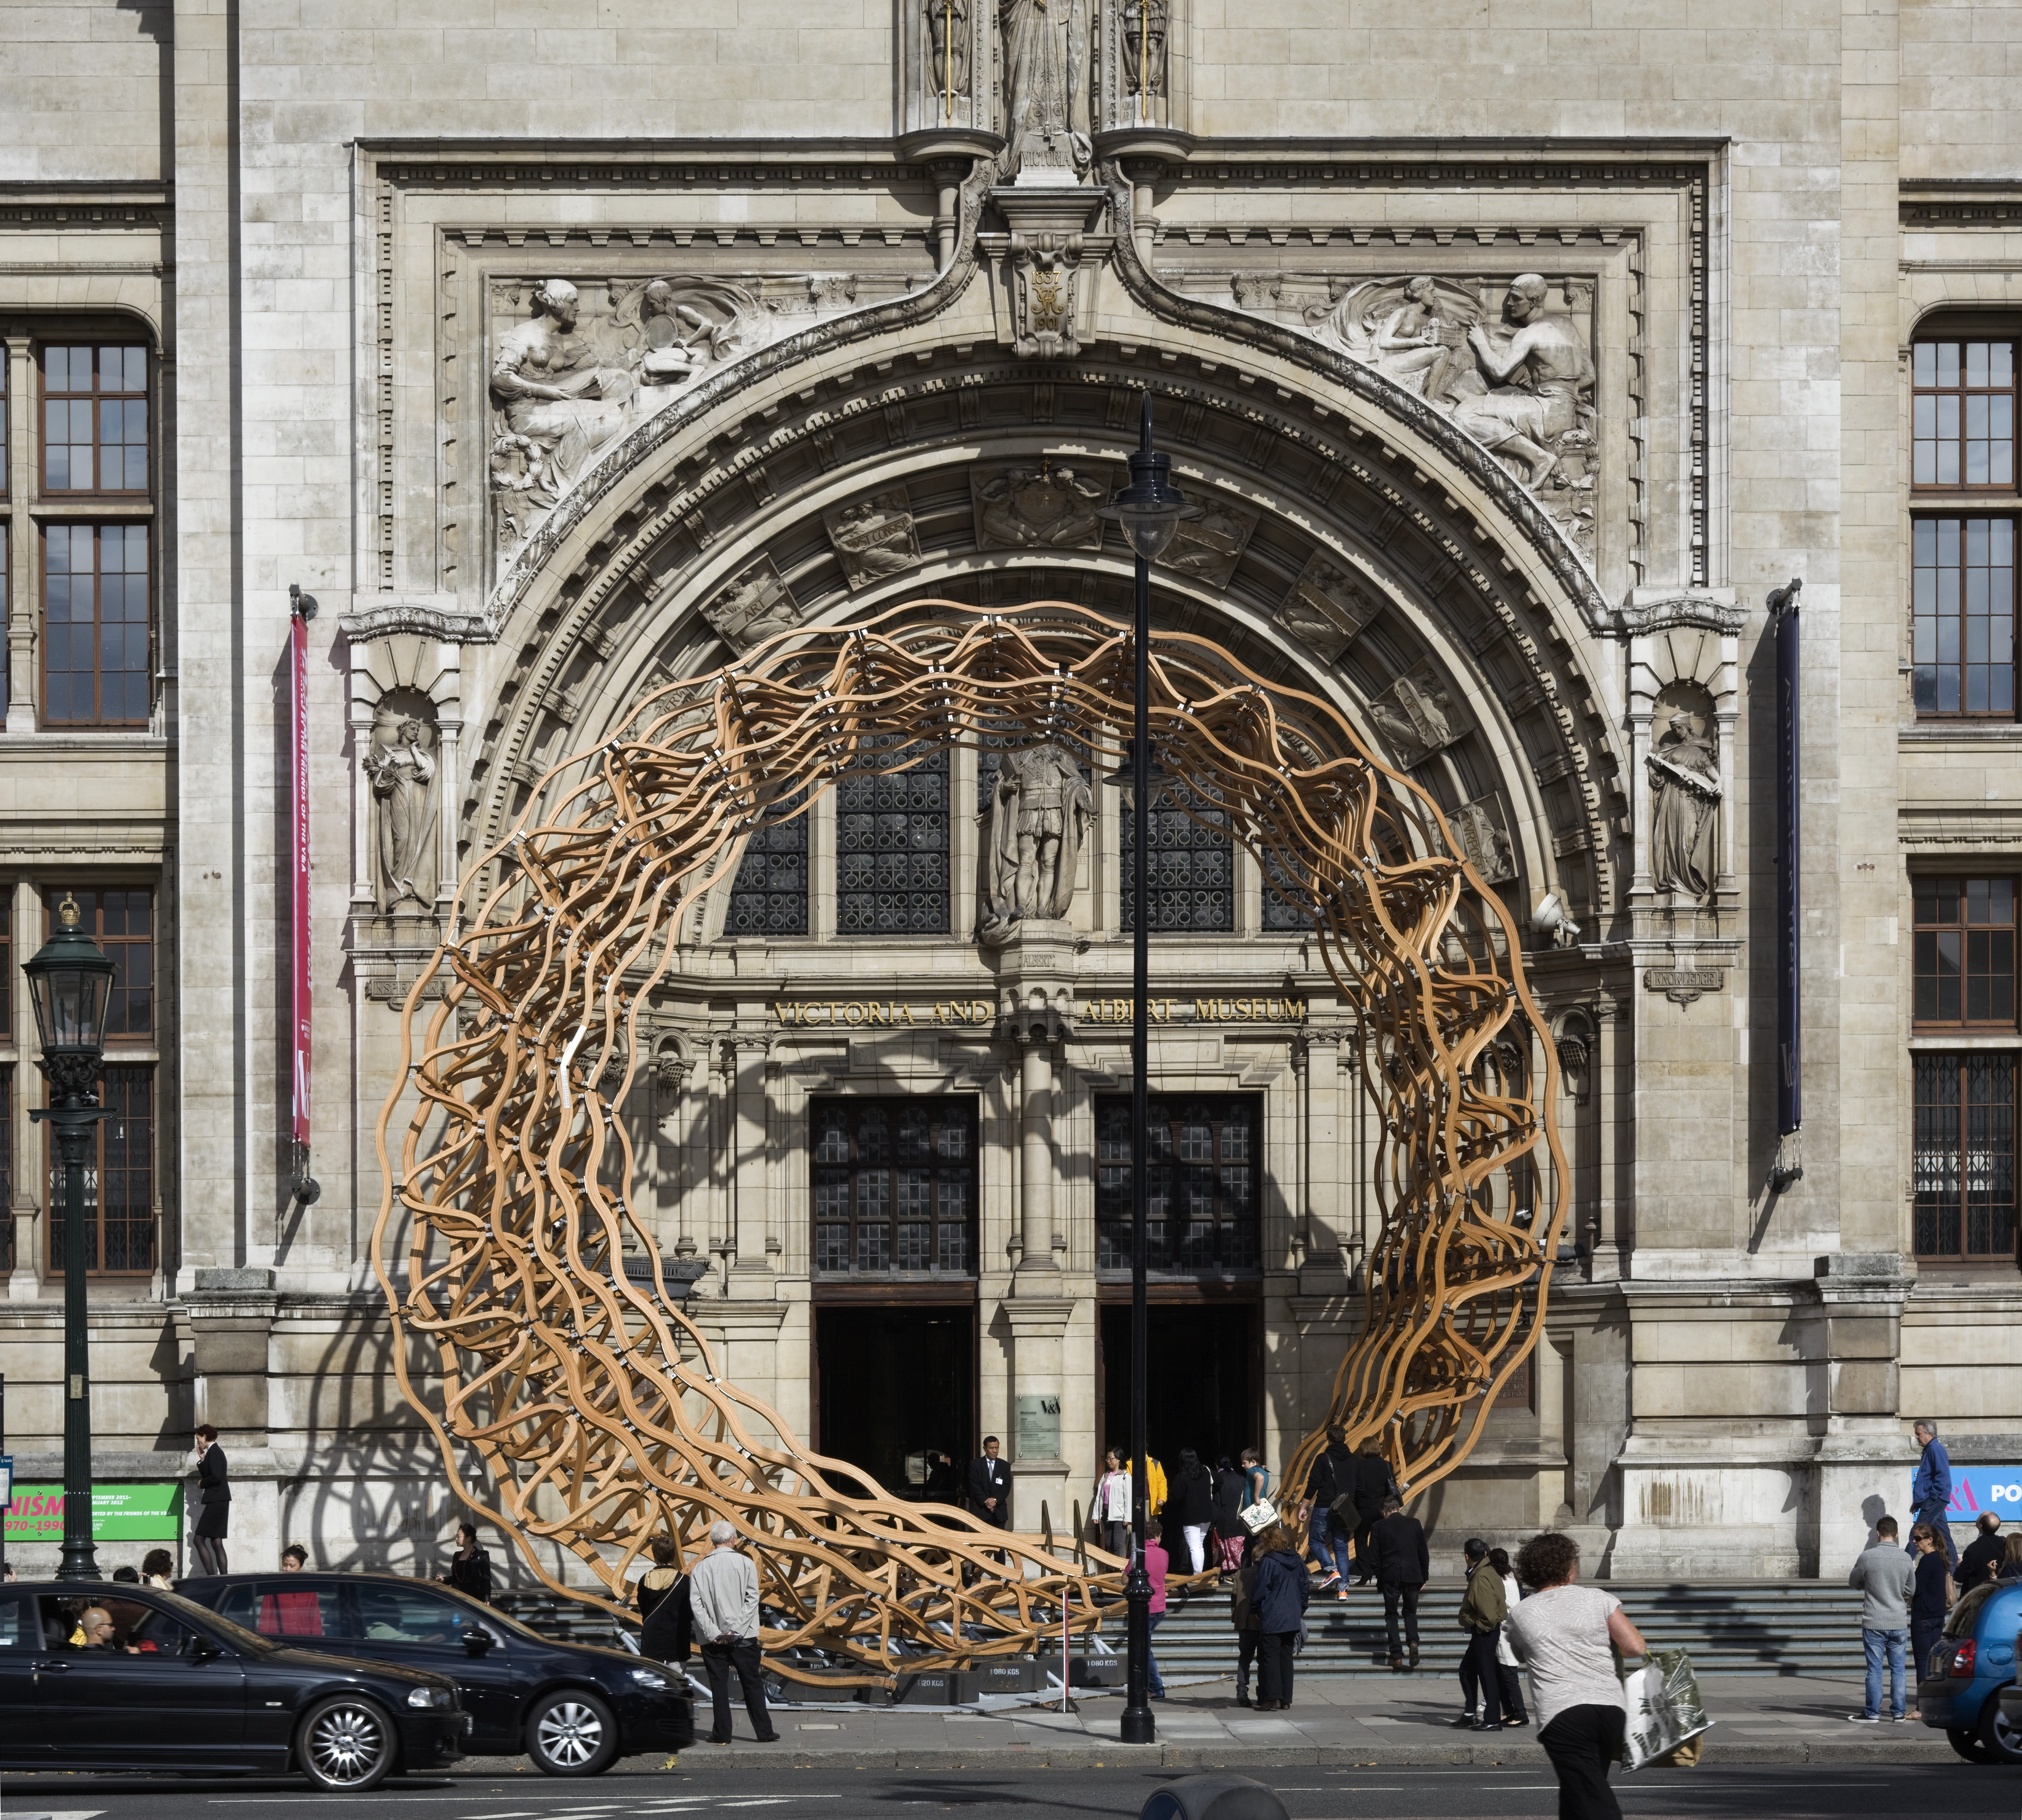 The arch brings design out onto the street, accessible to anyone passingthrough.